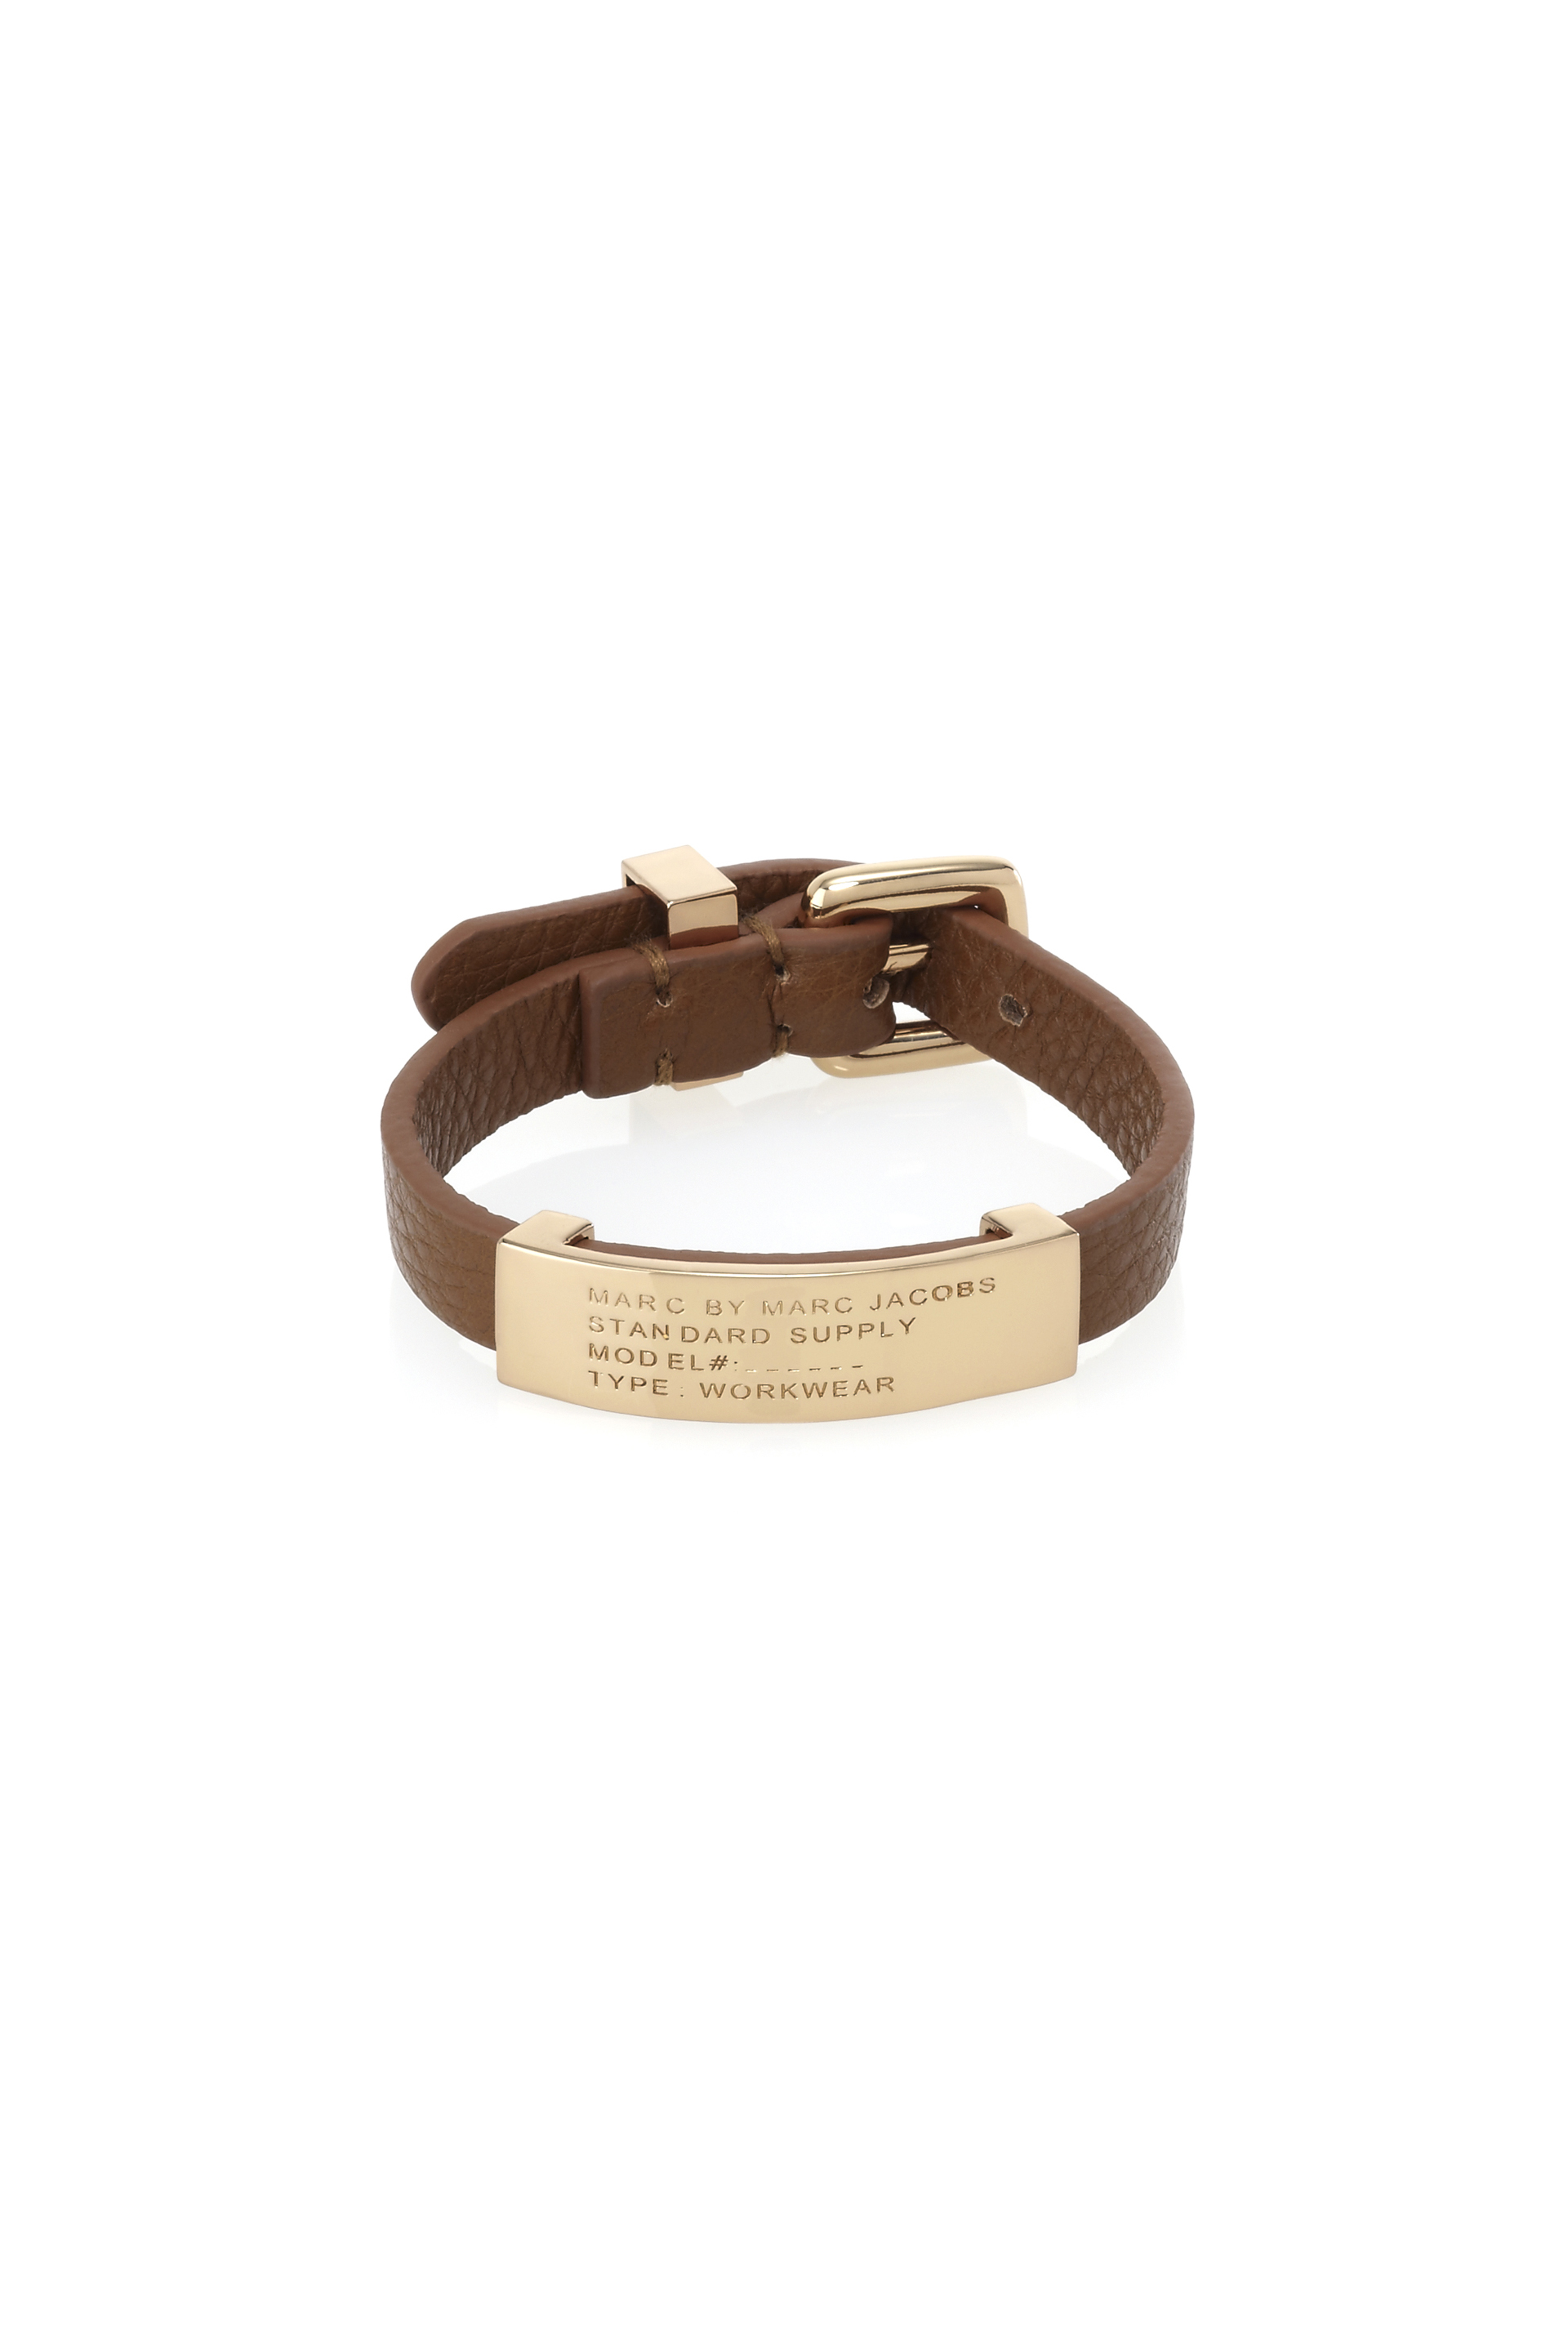 Standard Supply ID Bracelet - Marc by Marc Jacobs - Shop marcjacobs.com - Marc Jacobs